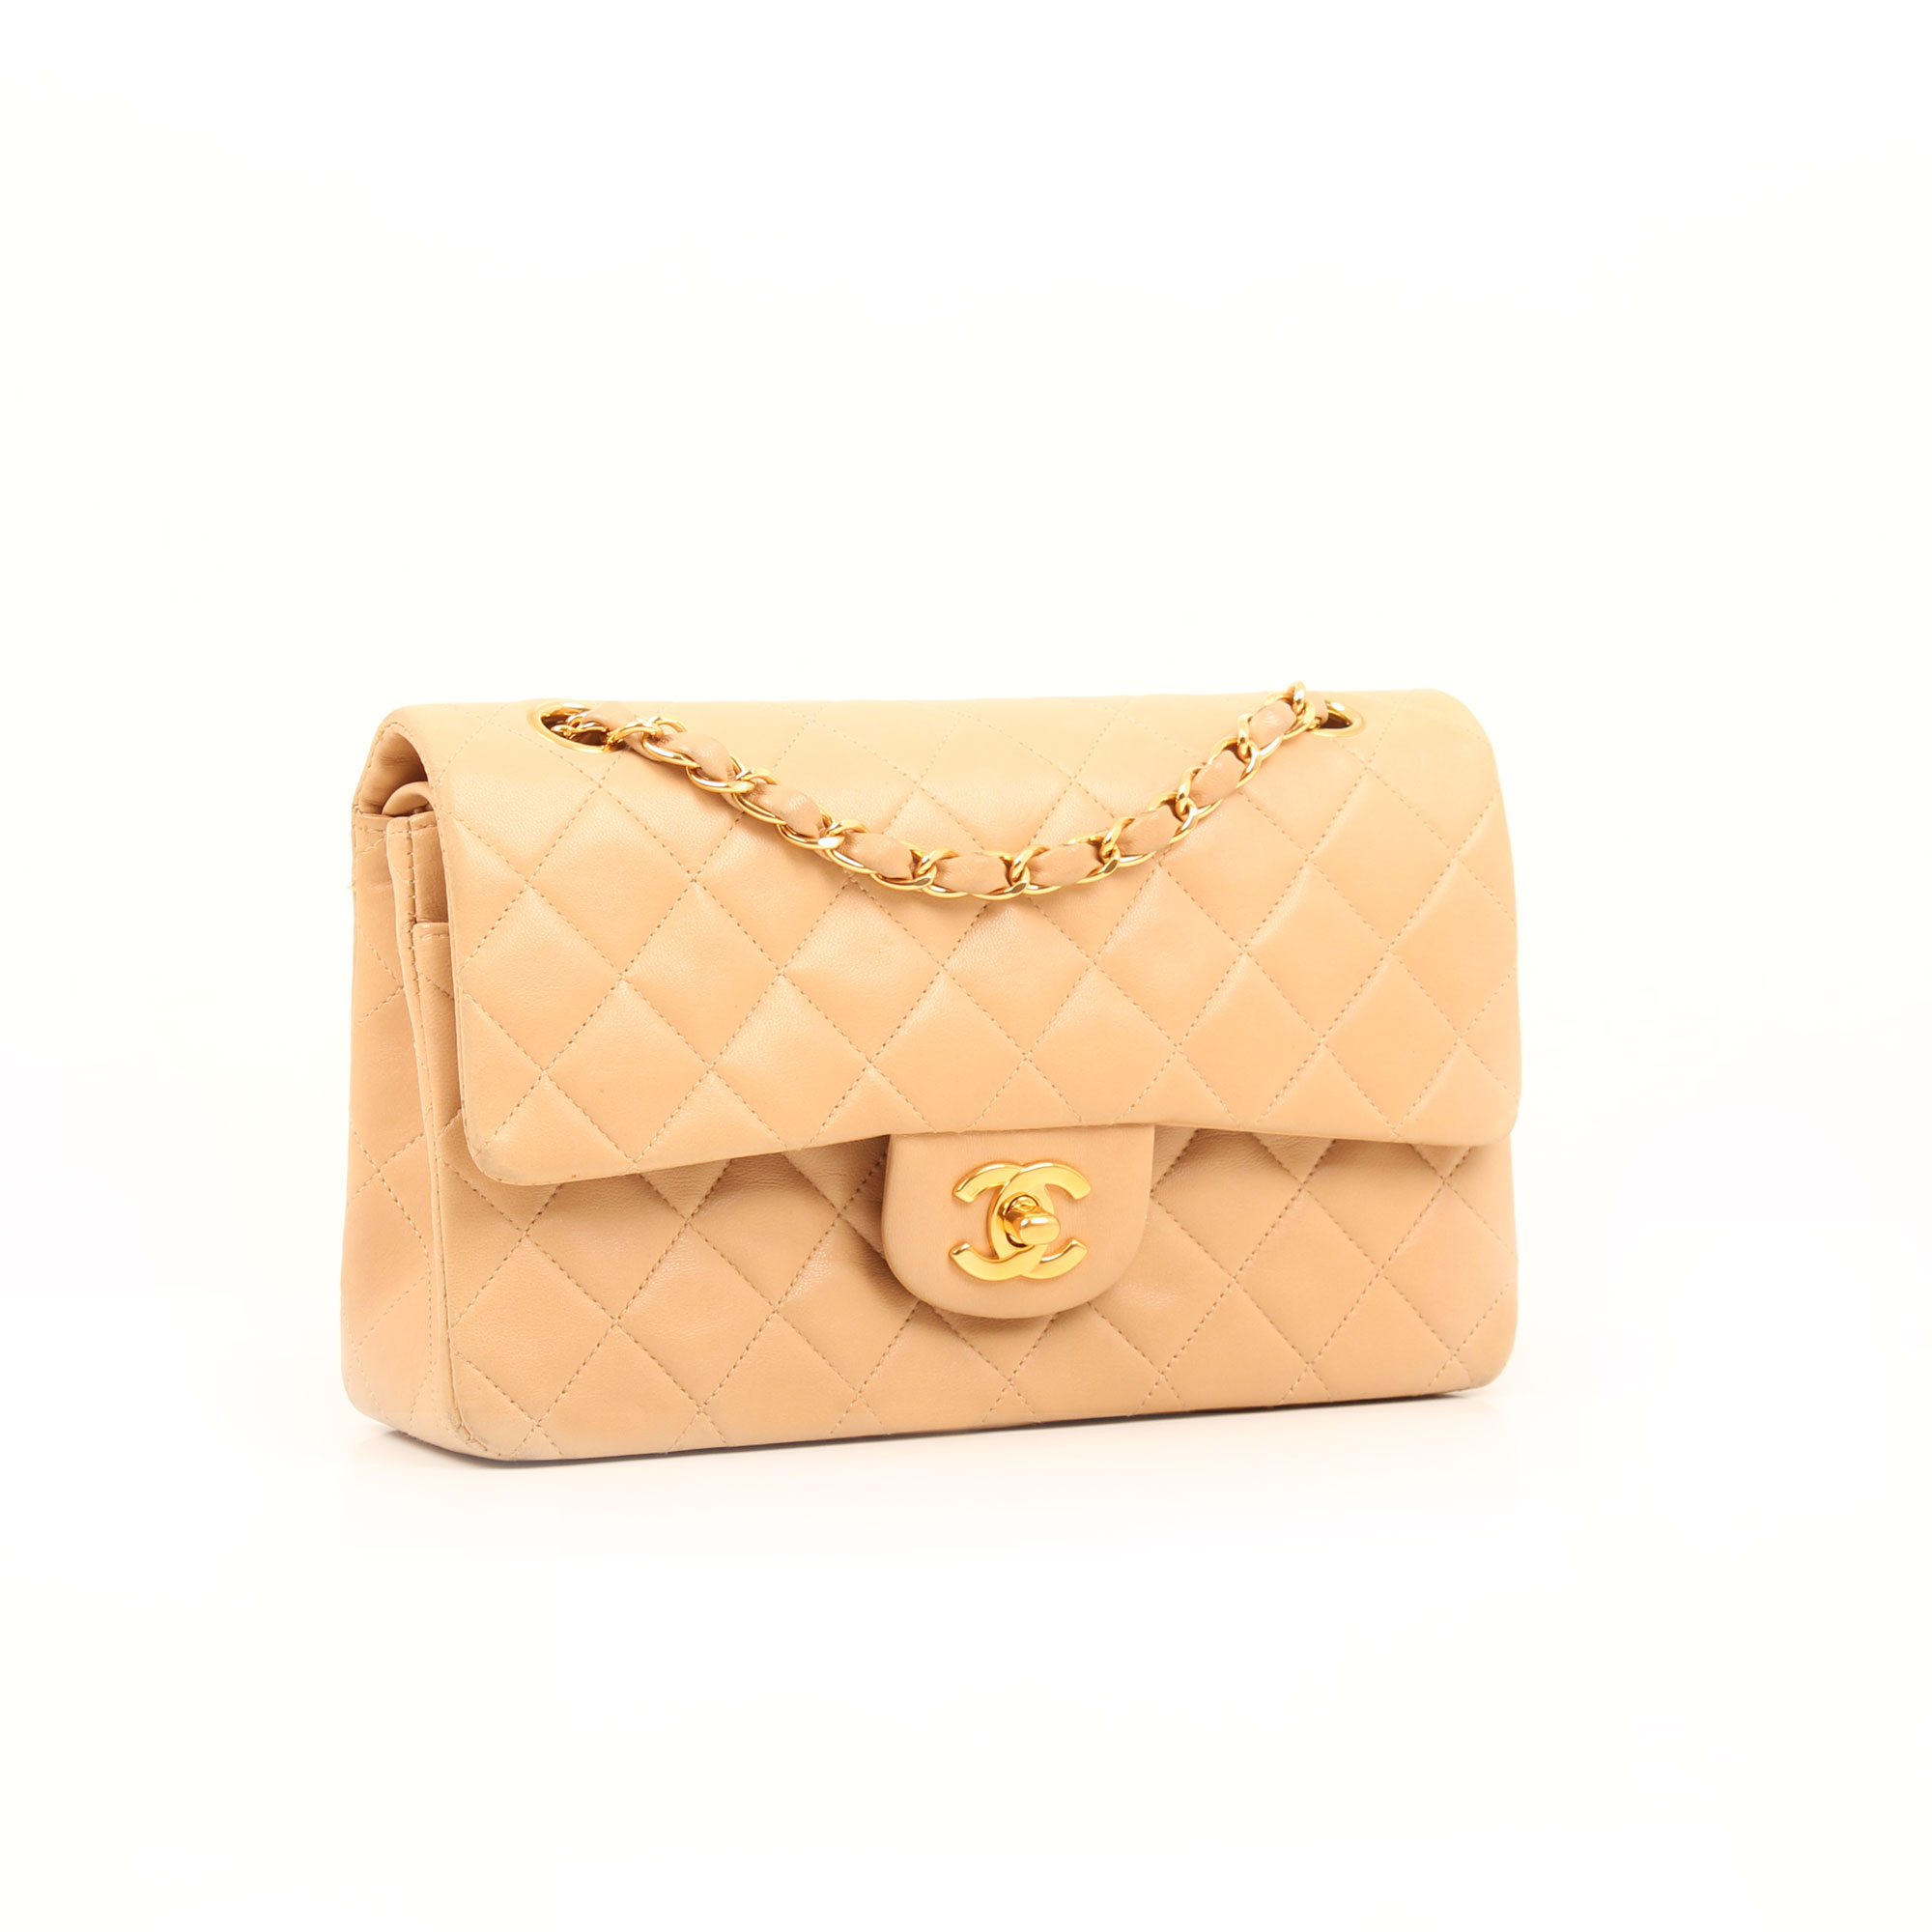 General image of chanel classic double flap bag beige